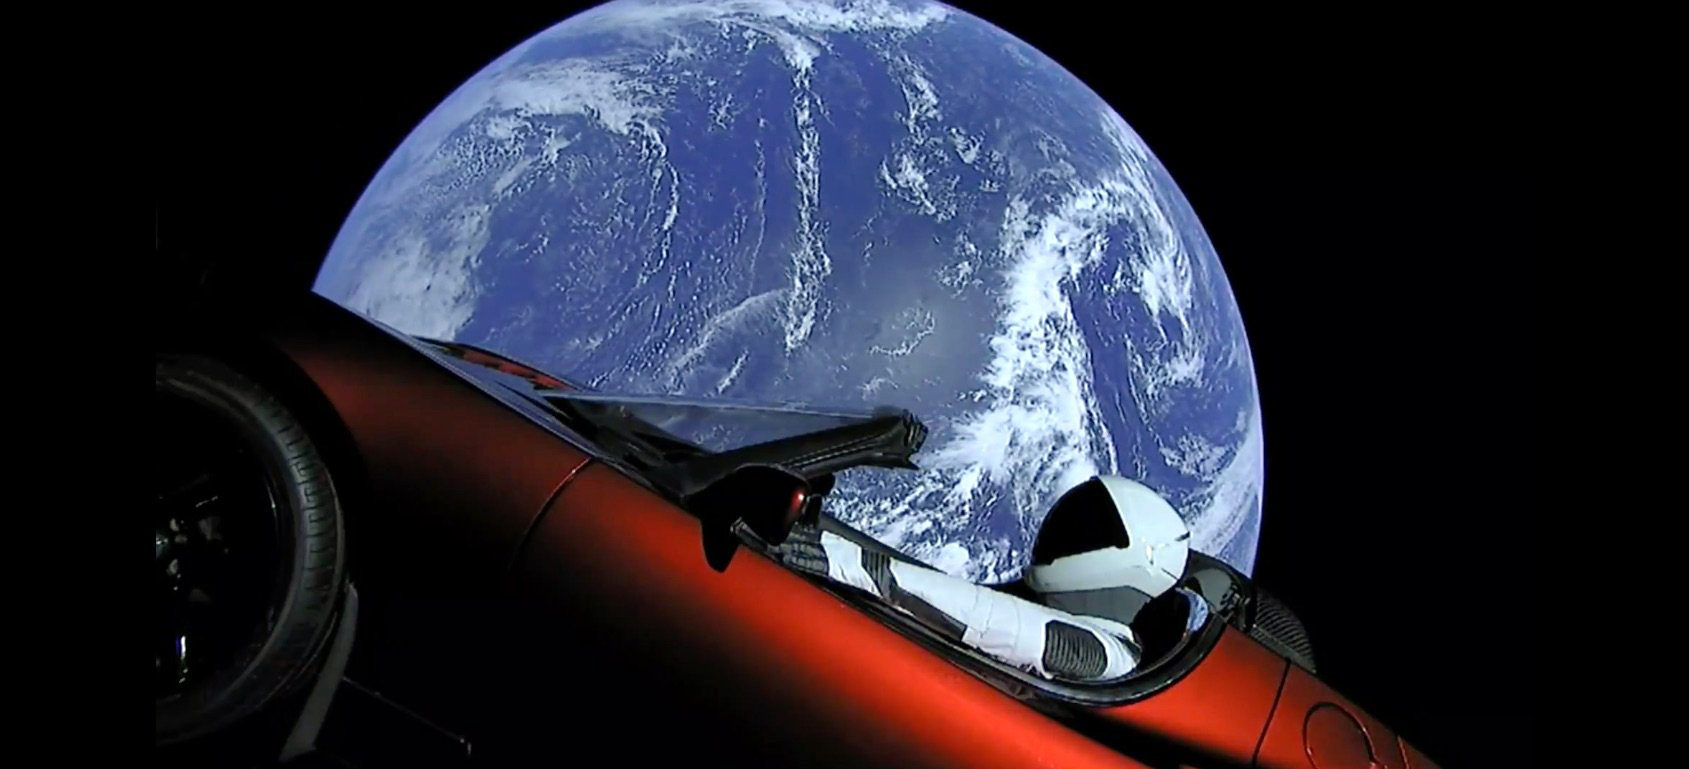 In Honour of SpaceX and Elon Musk